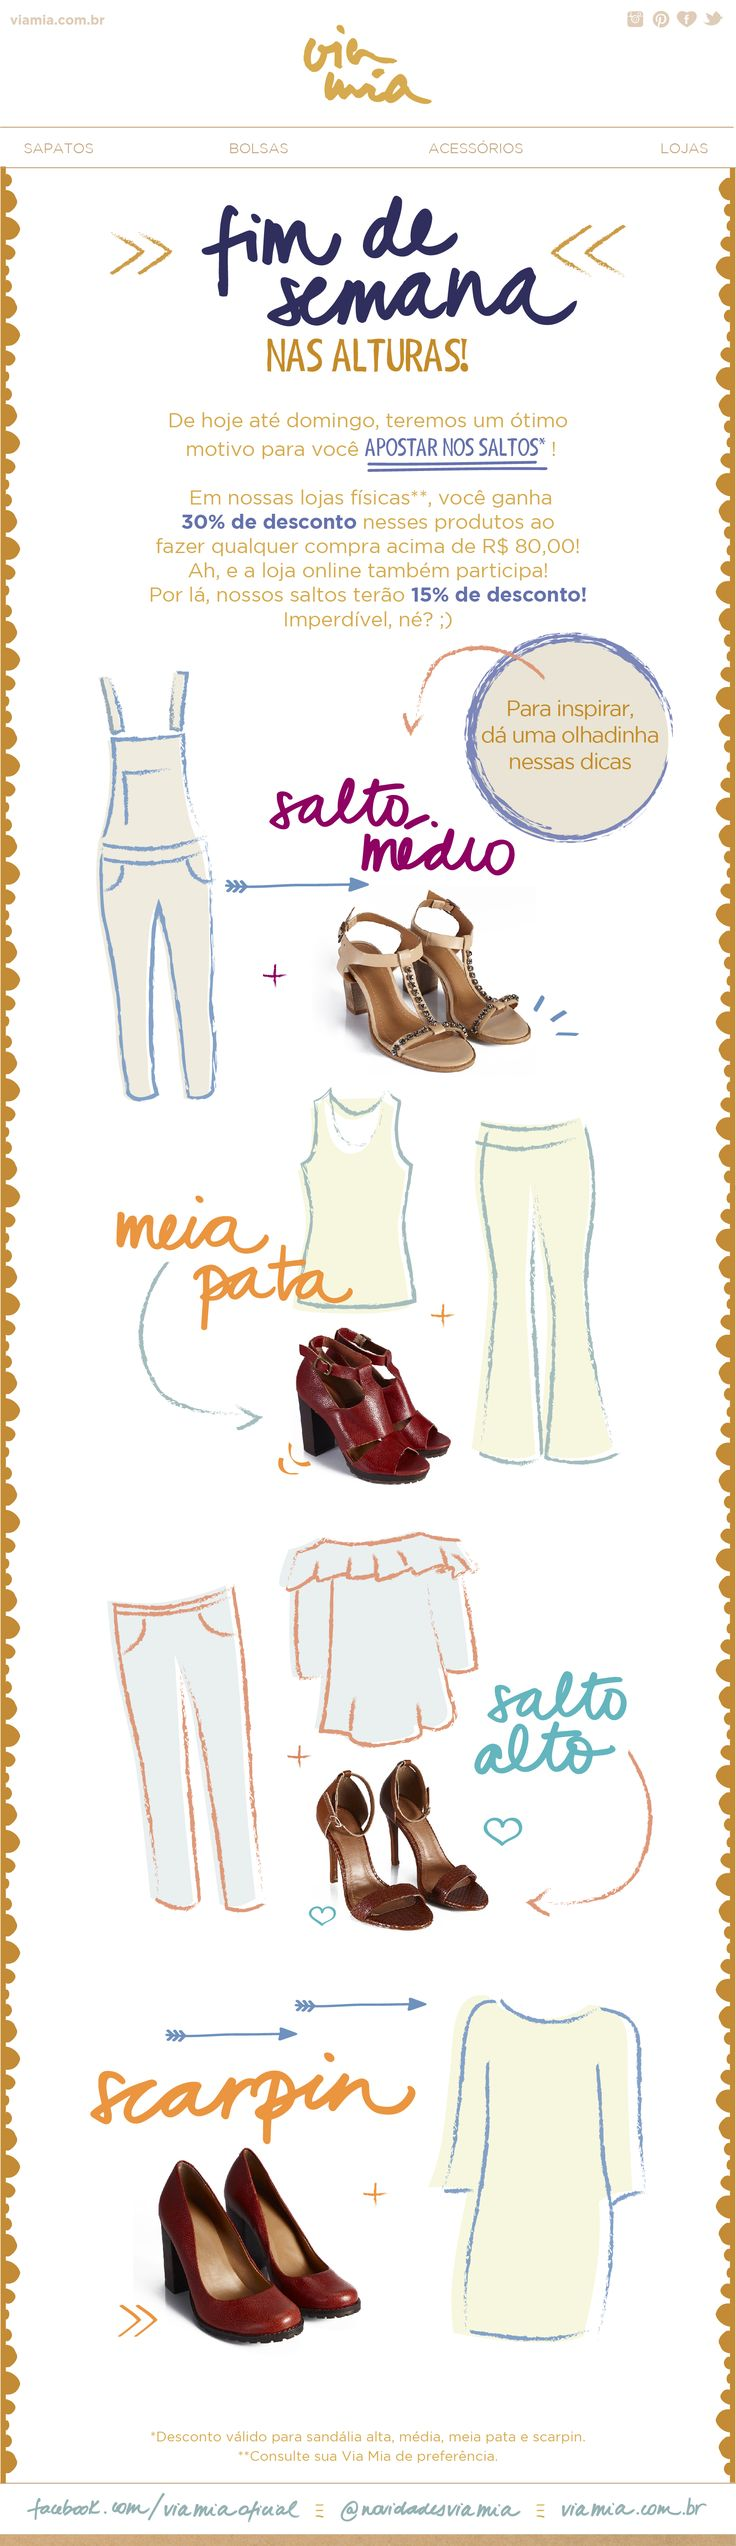 Via Mia | newsletter | fashion email | fashion design | email | email marketing | email inspiration | e-mail